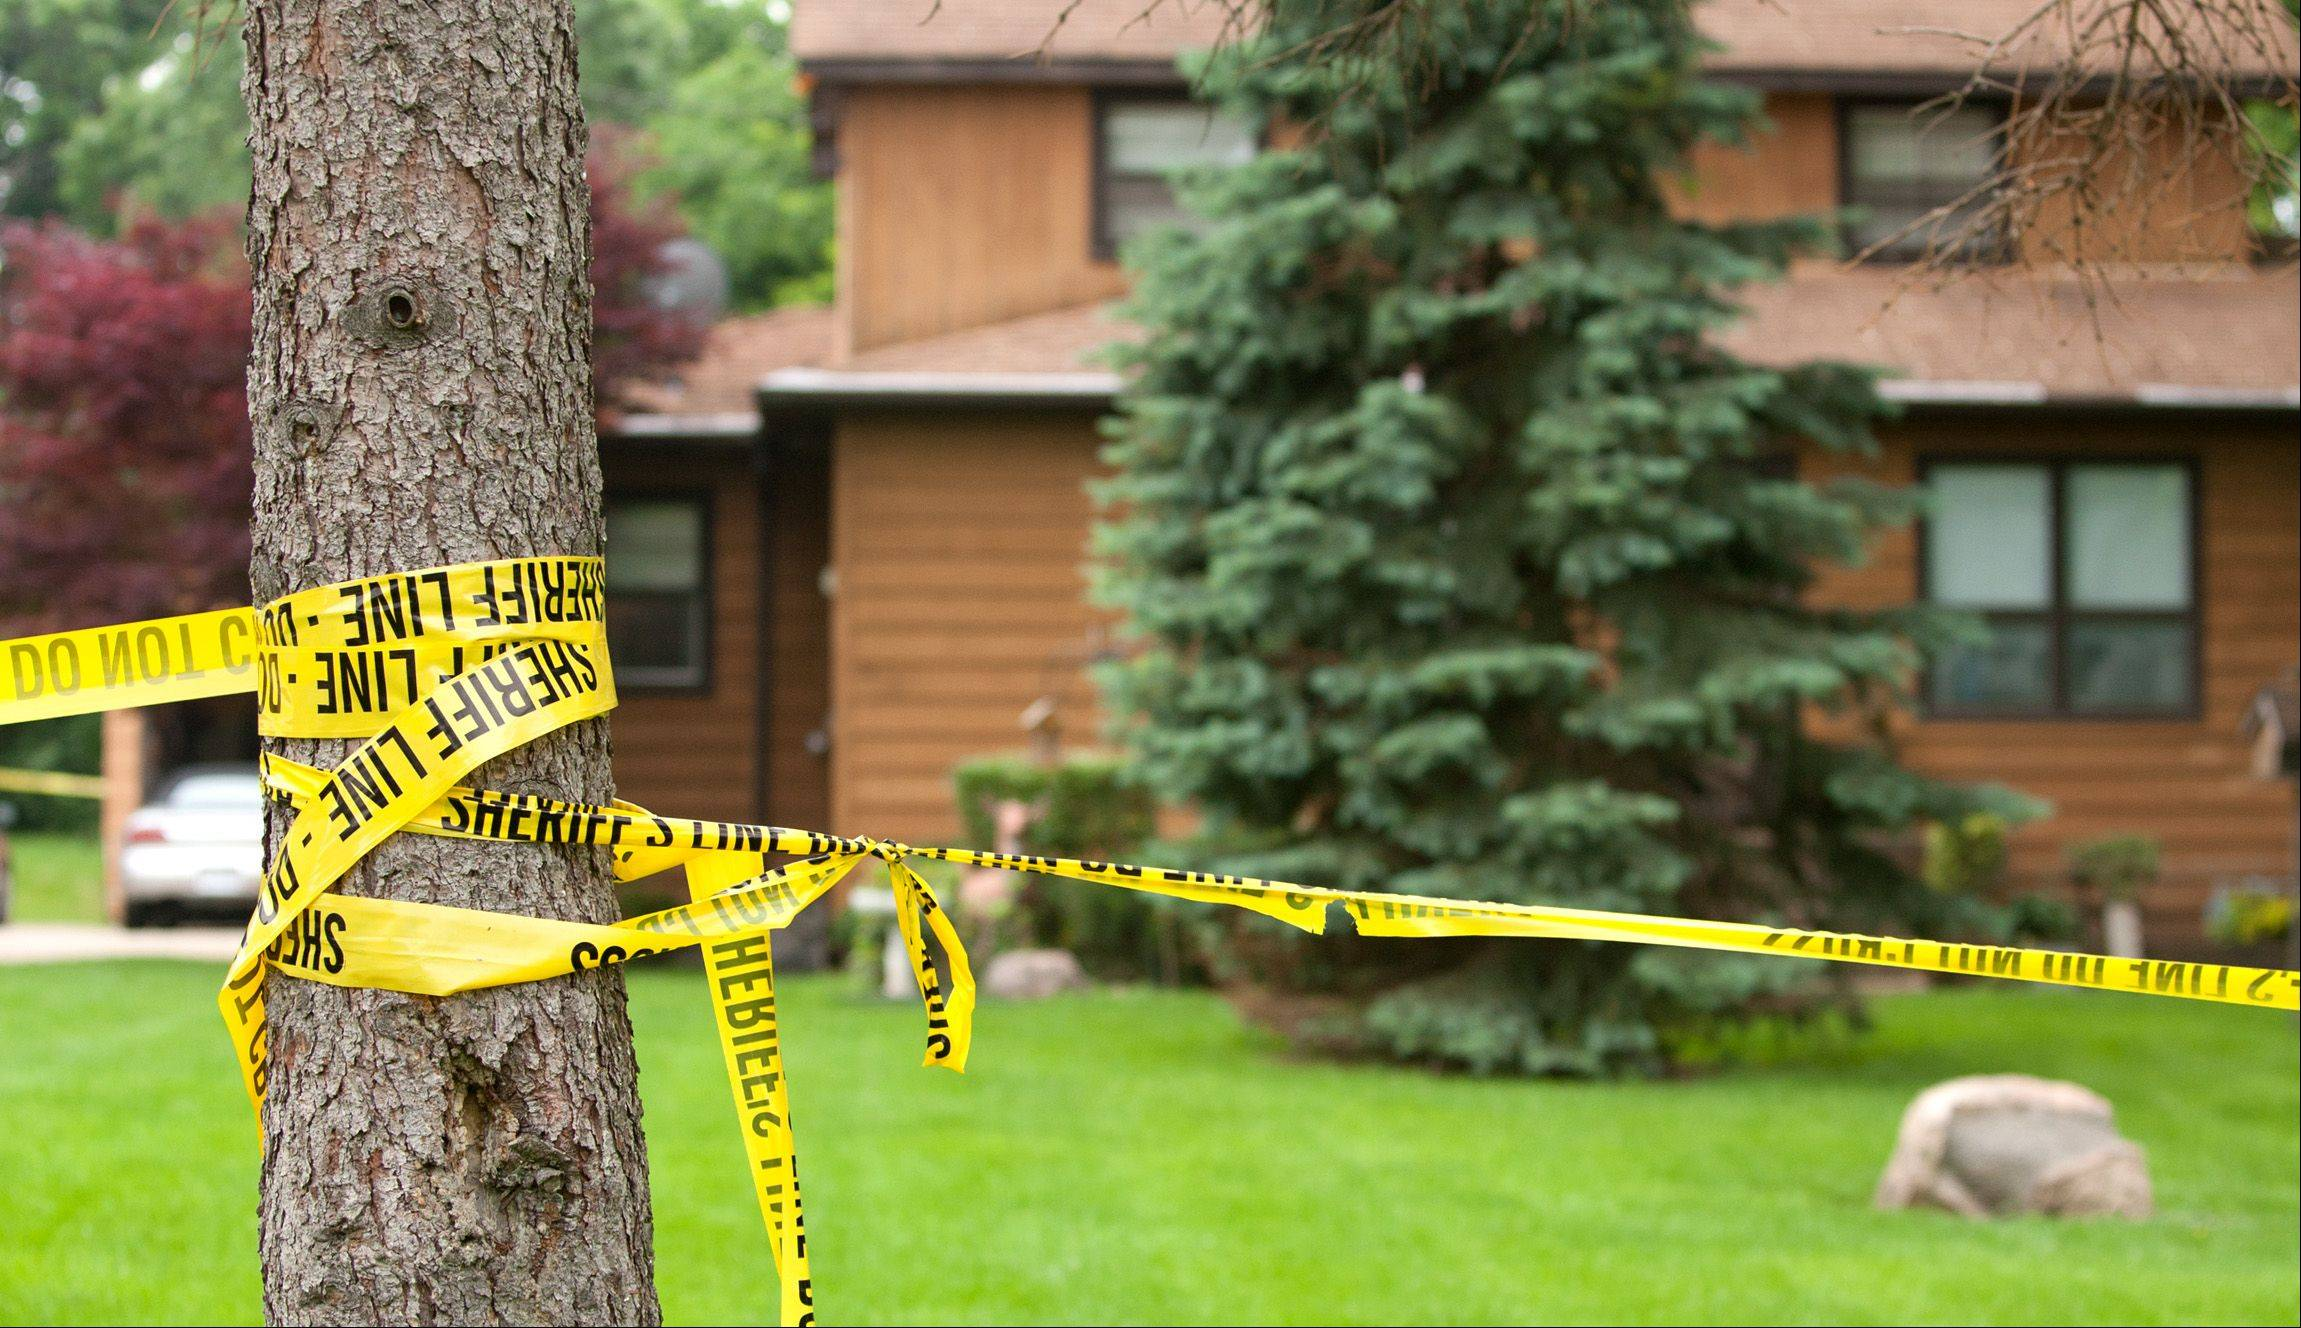 Autopsies were being conducted Wednesday for four family members who died Tuesday in an apparent murder-suicide near Darien.